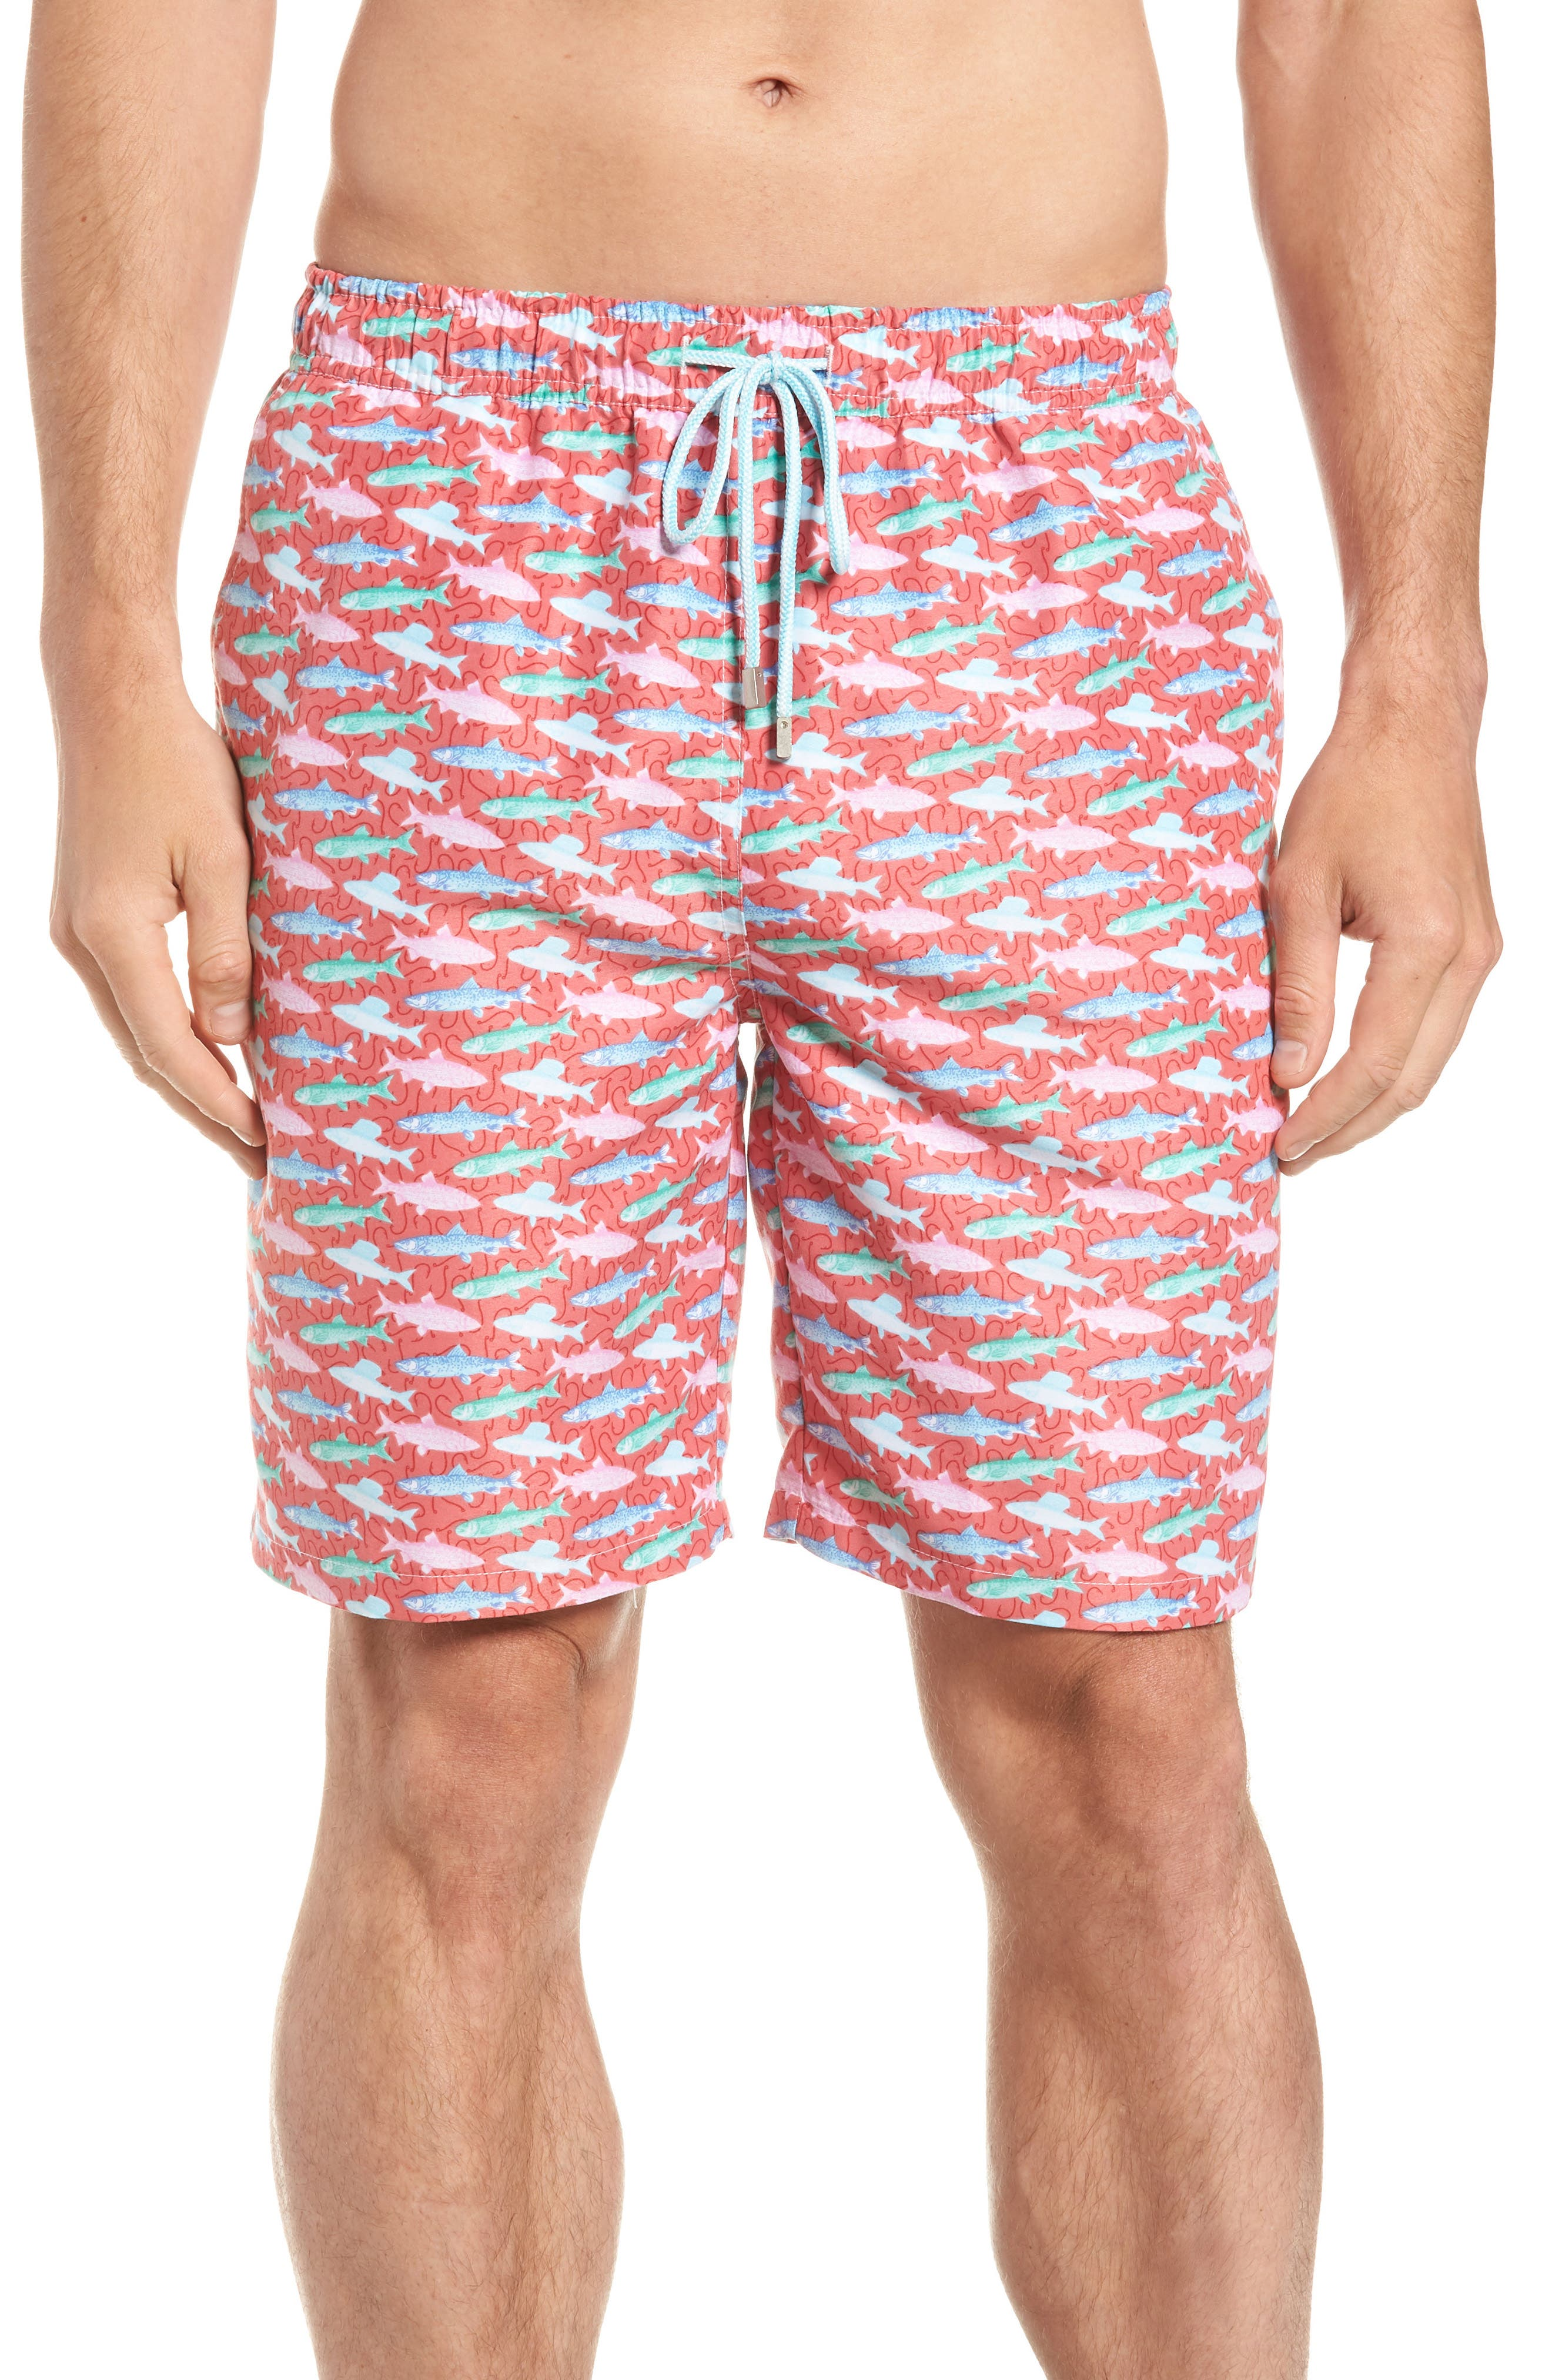 Fishermans Catch Swim Trunks,                         Main,                         color, Cape Red